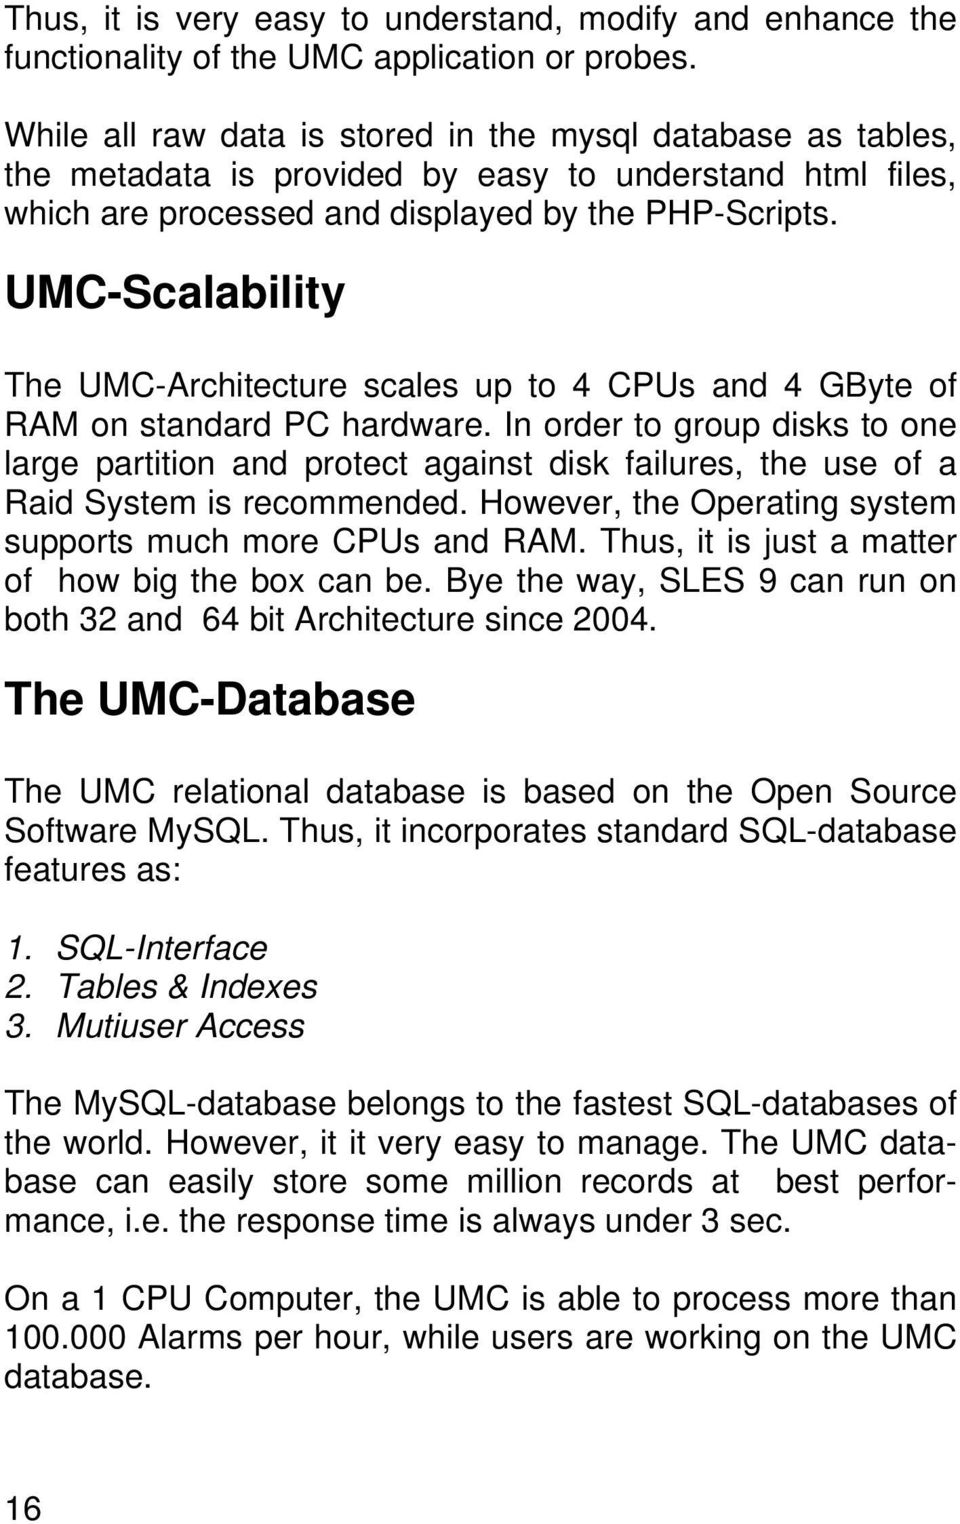 UMC-Scalability The UMC-Architecture scales up to 4 CPUs and 4 GByte of RAM on standard PC hardware.